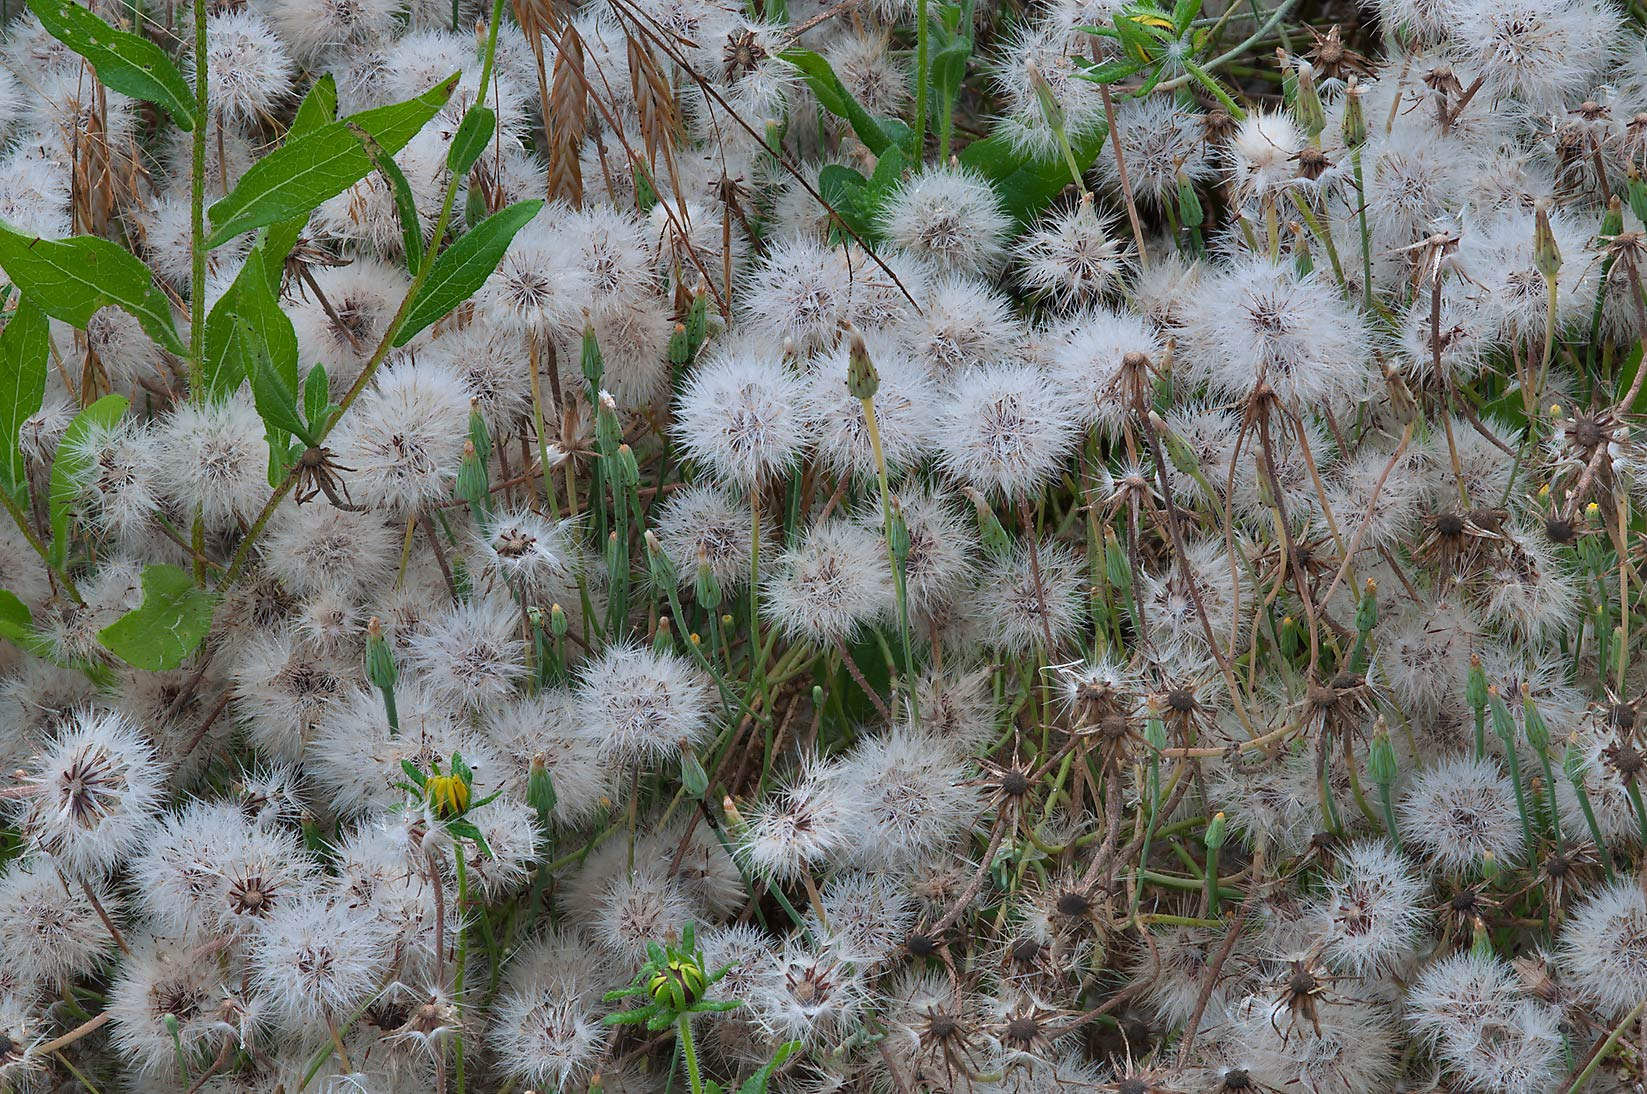 Seed heads of Texas dandelions in Lick Creek Park. College Station, Texas